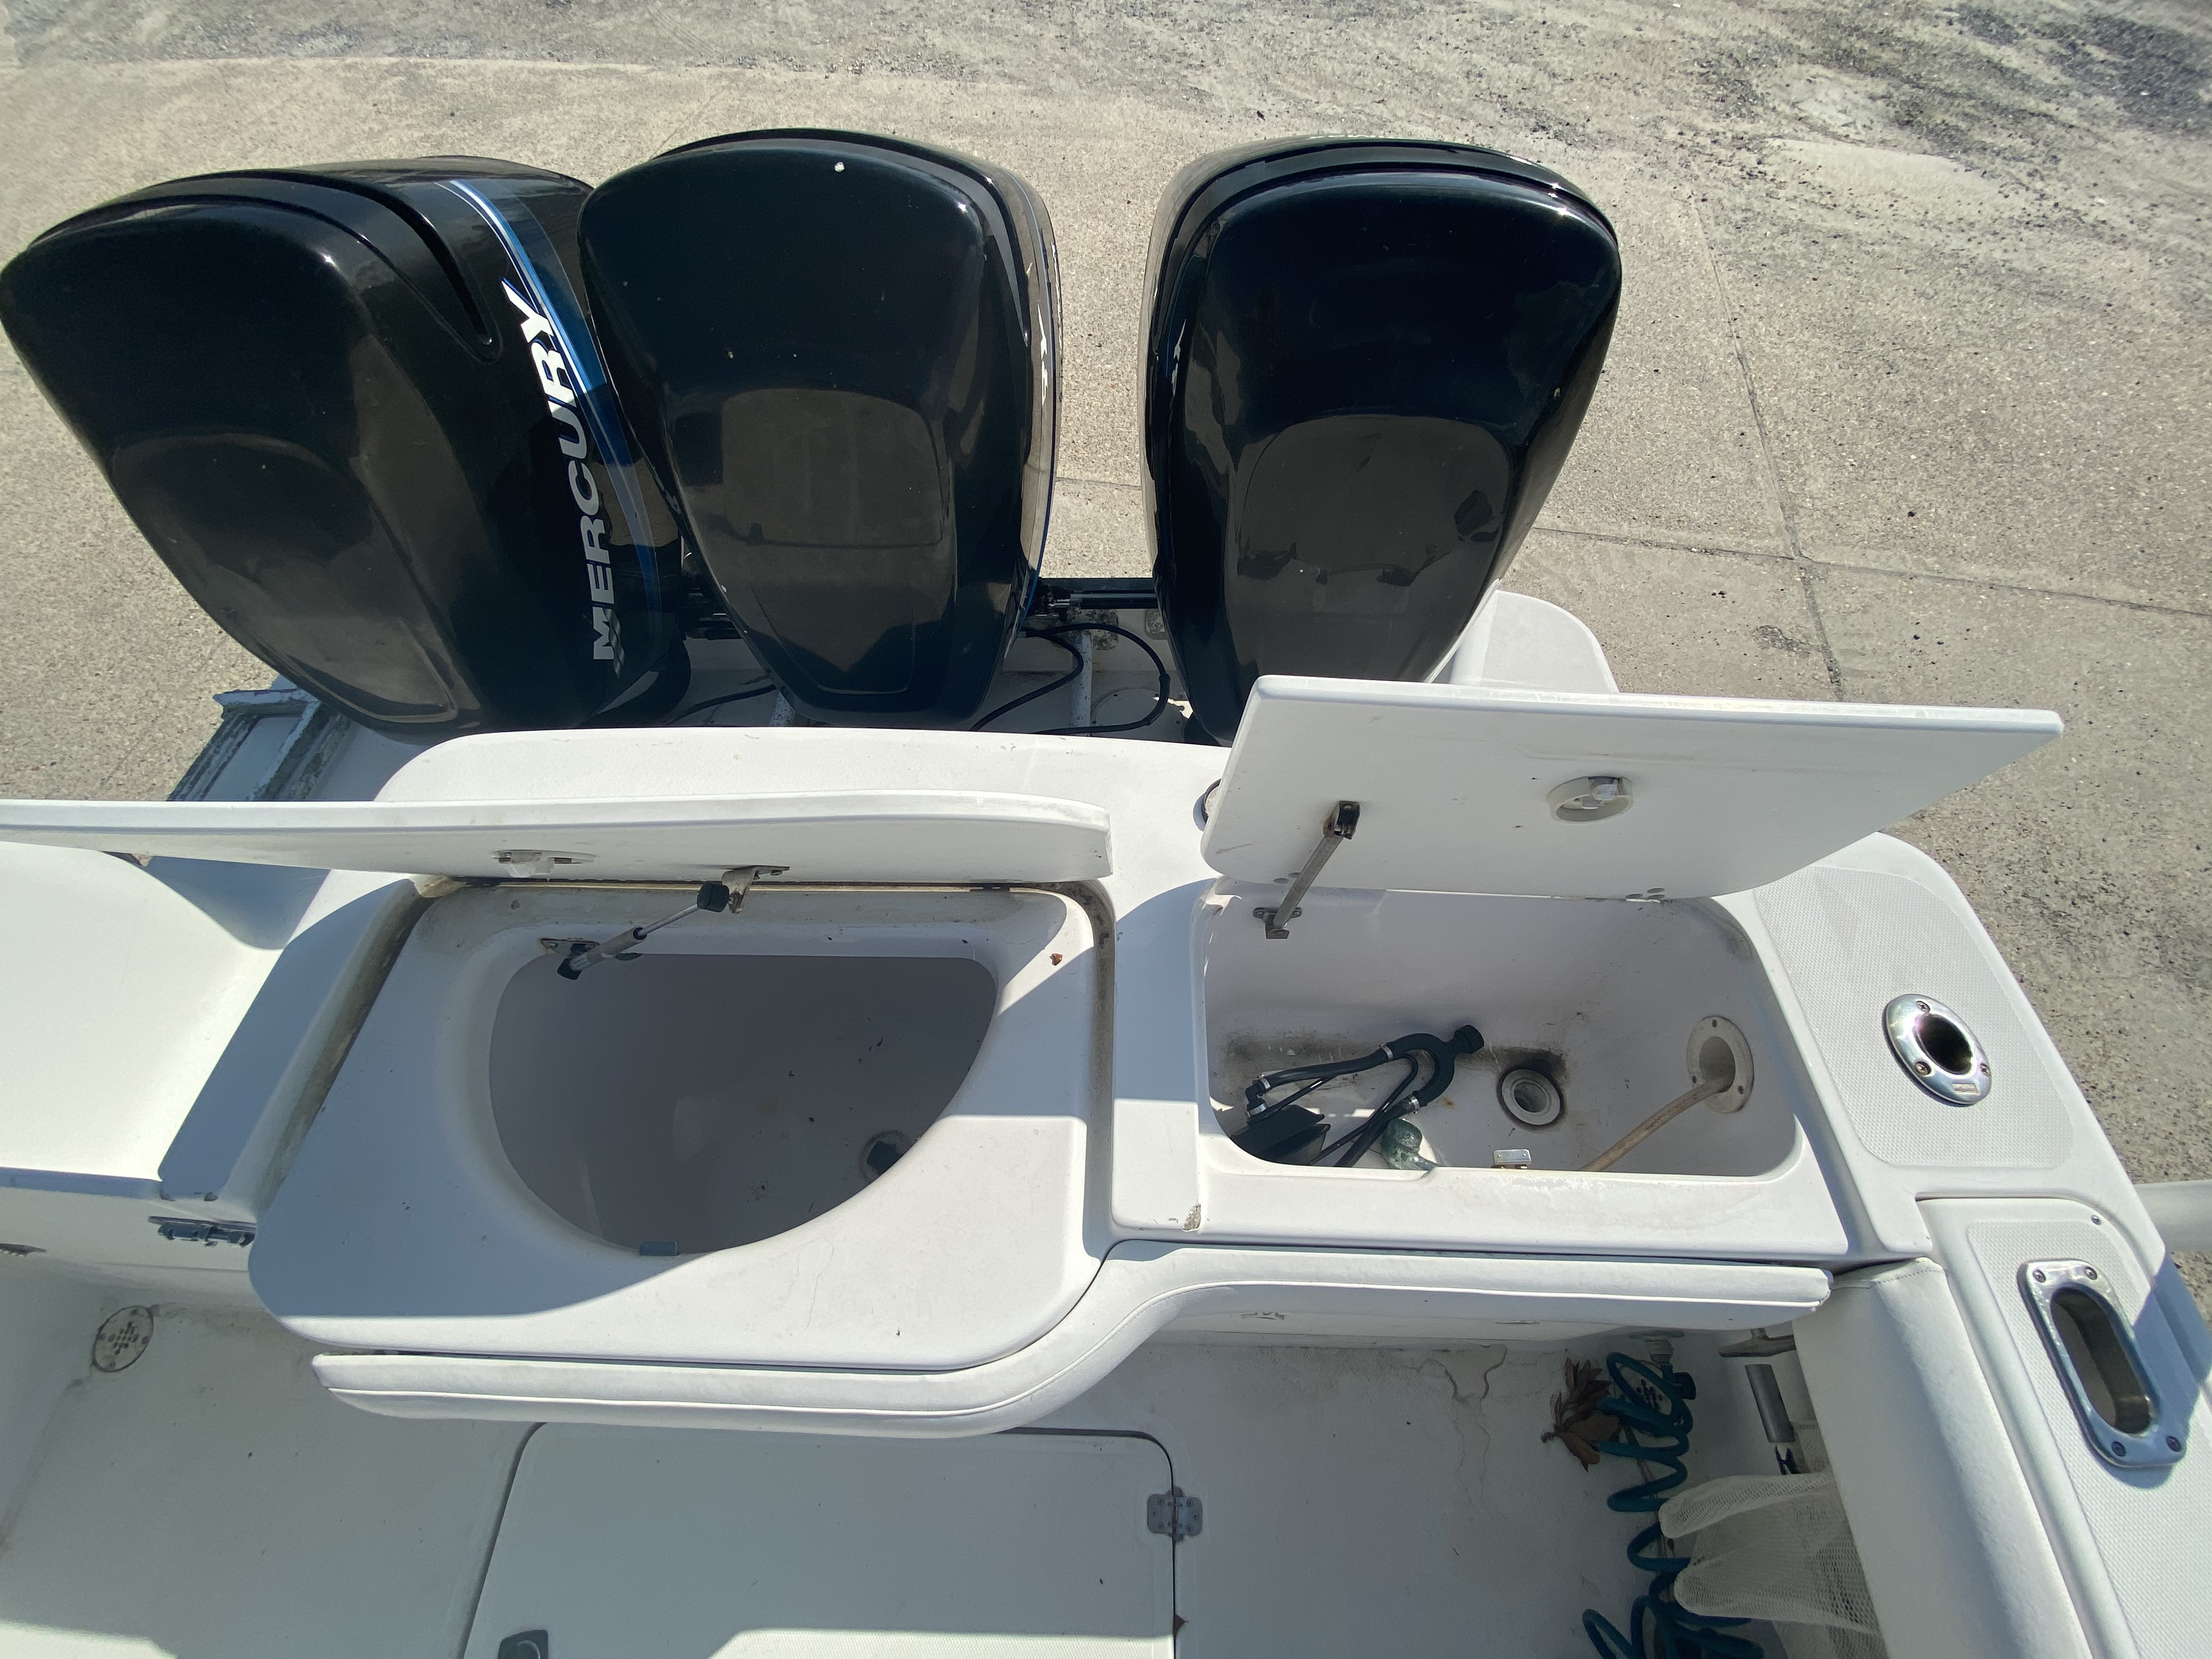 1999 Pro-Line boat for sale, model of the boat is 3400 SS & Image # 11 of 17